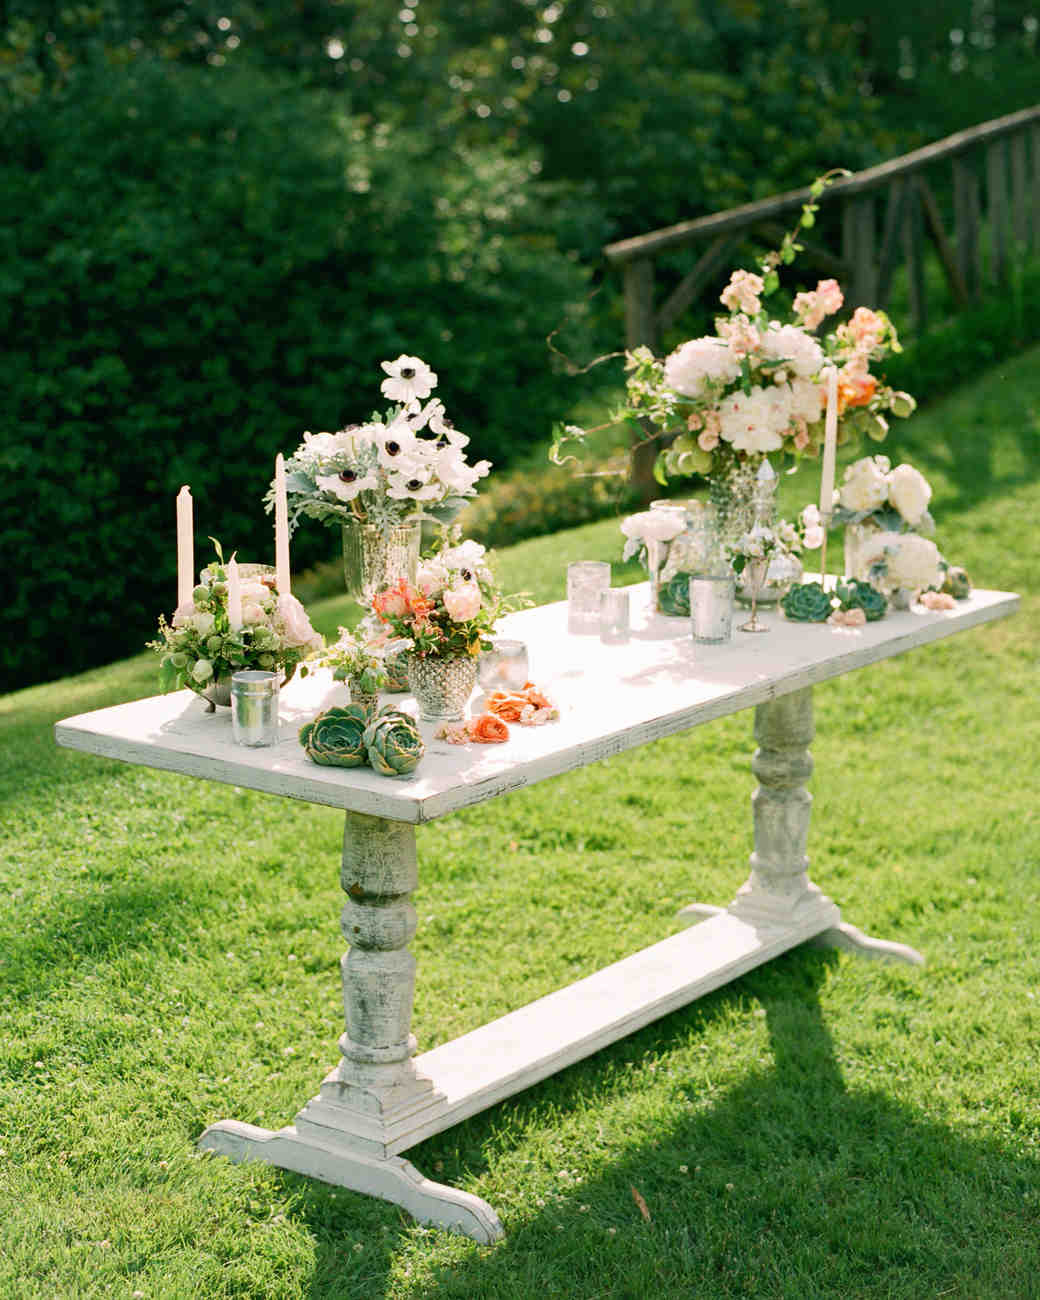 Rustic Wedding Altar Keywords Weddingaltars: A Vintage, Formal Outdoor Wedding In Virginia